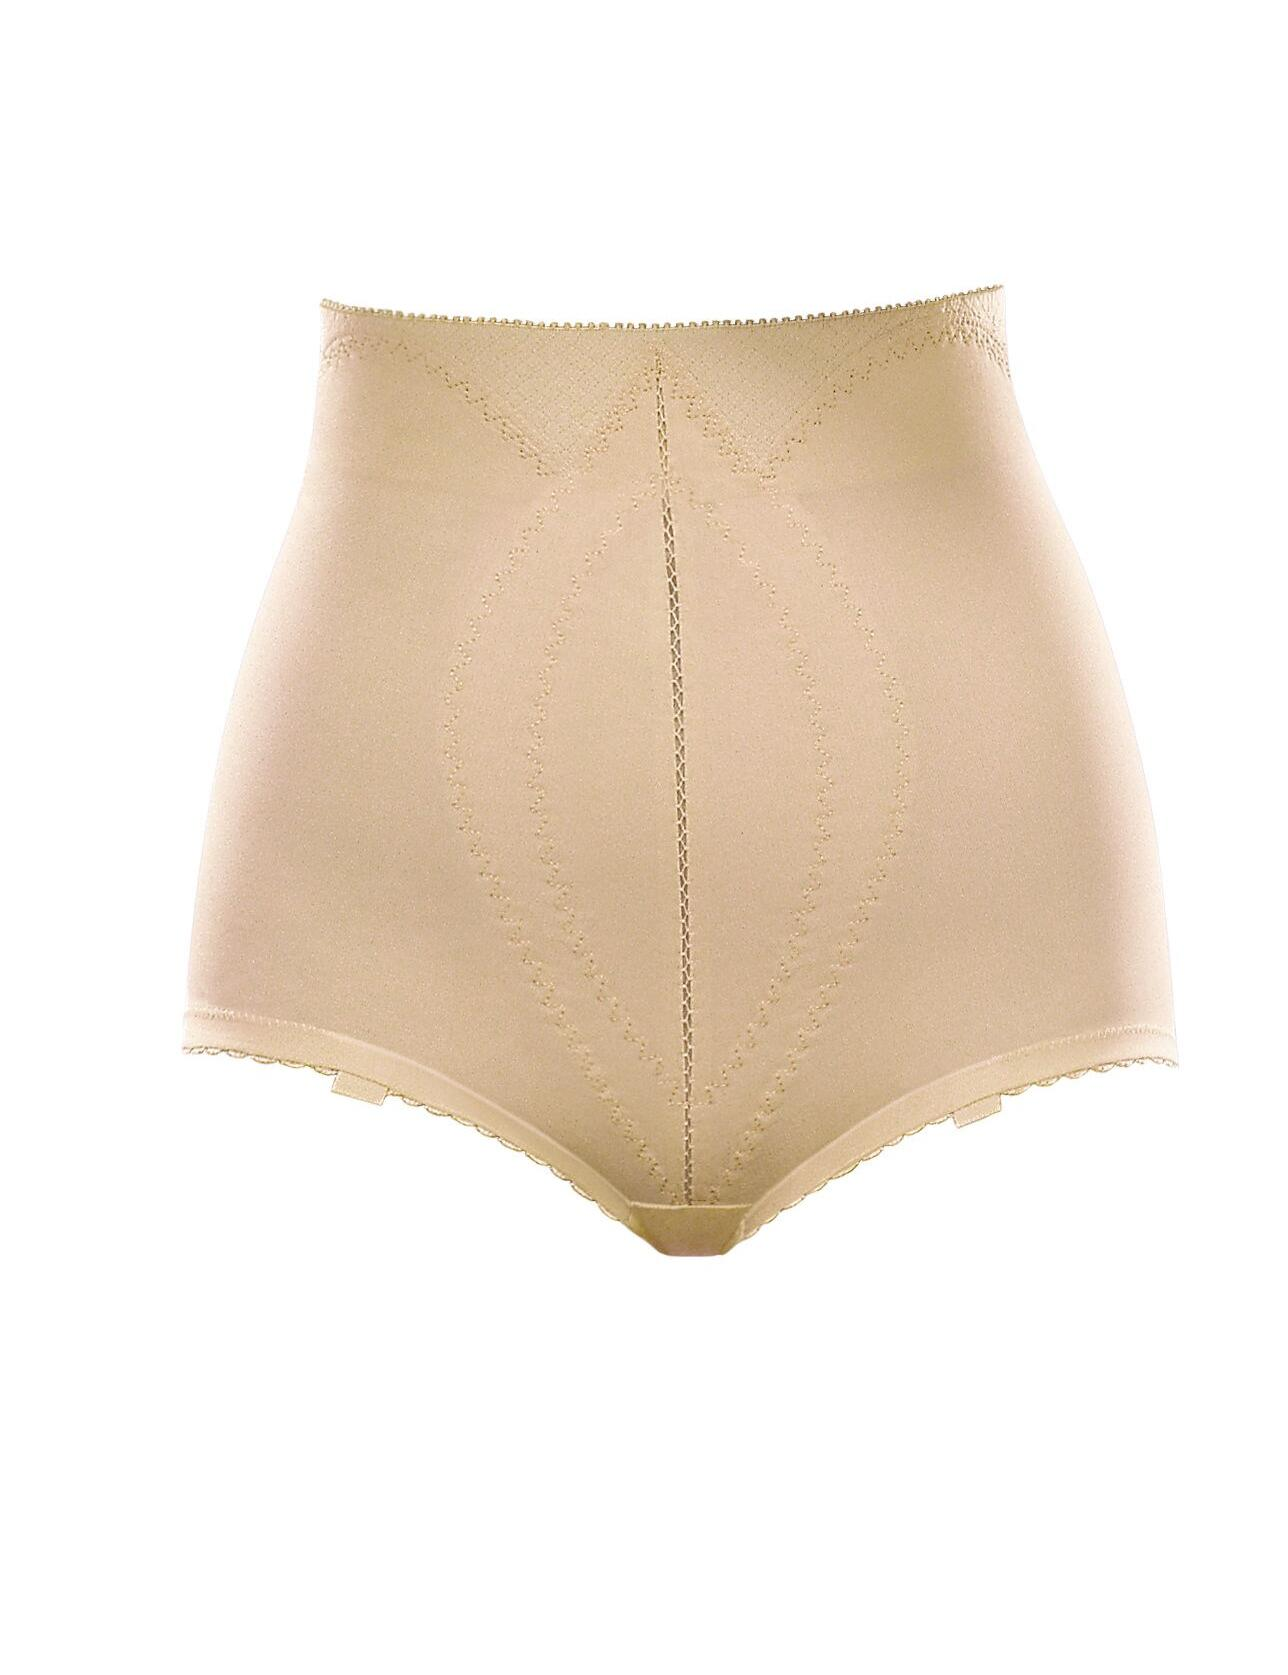 Playtex I Can't Believe it's a Girdle: Firm Control P2464 - Beige